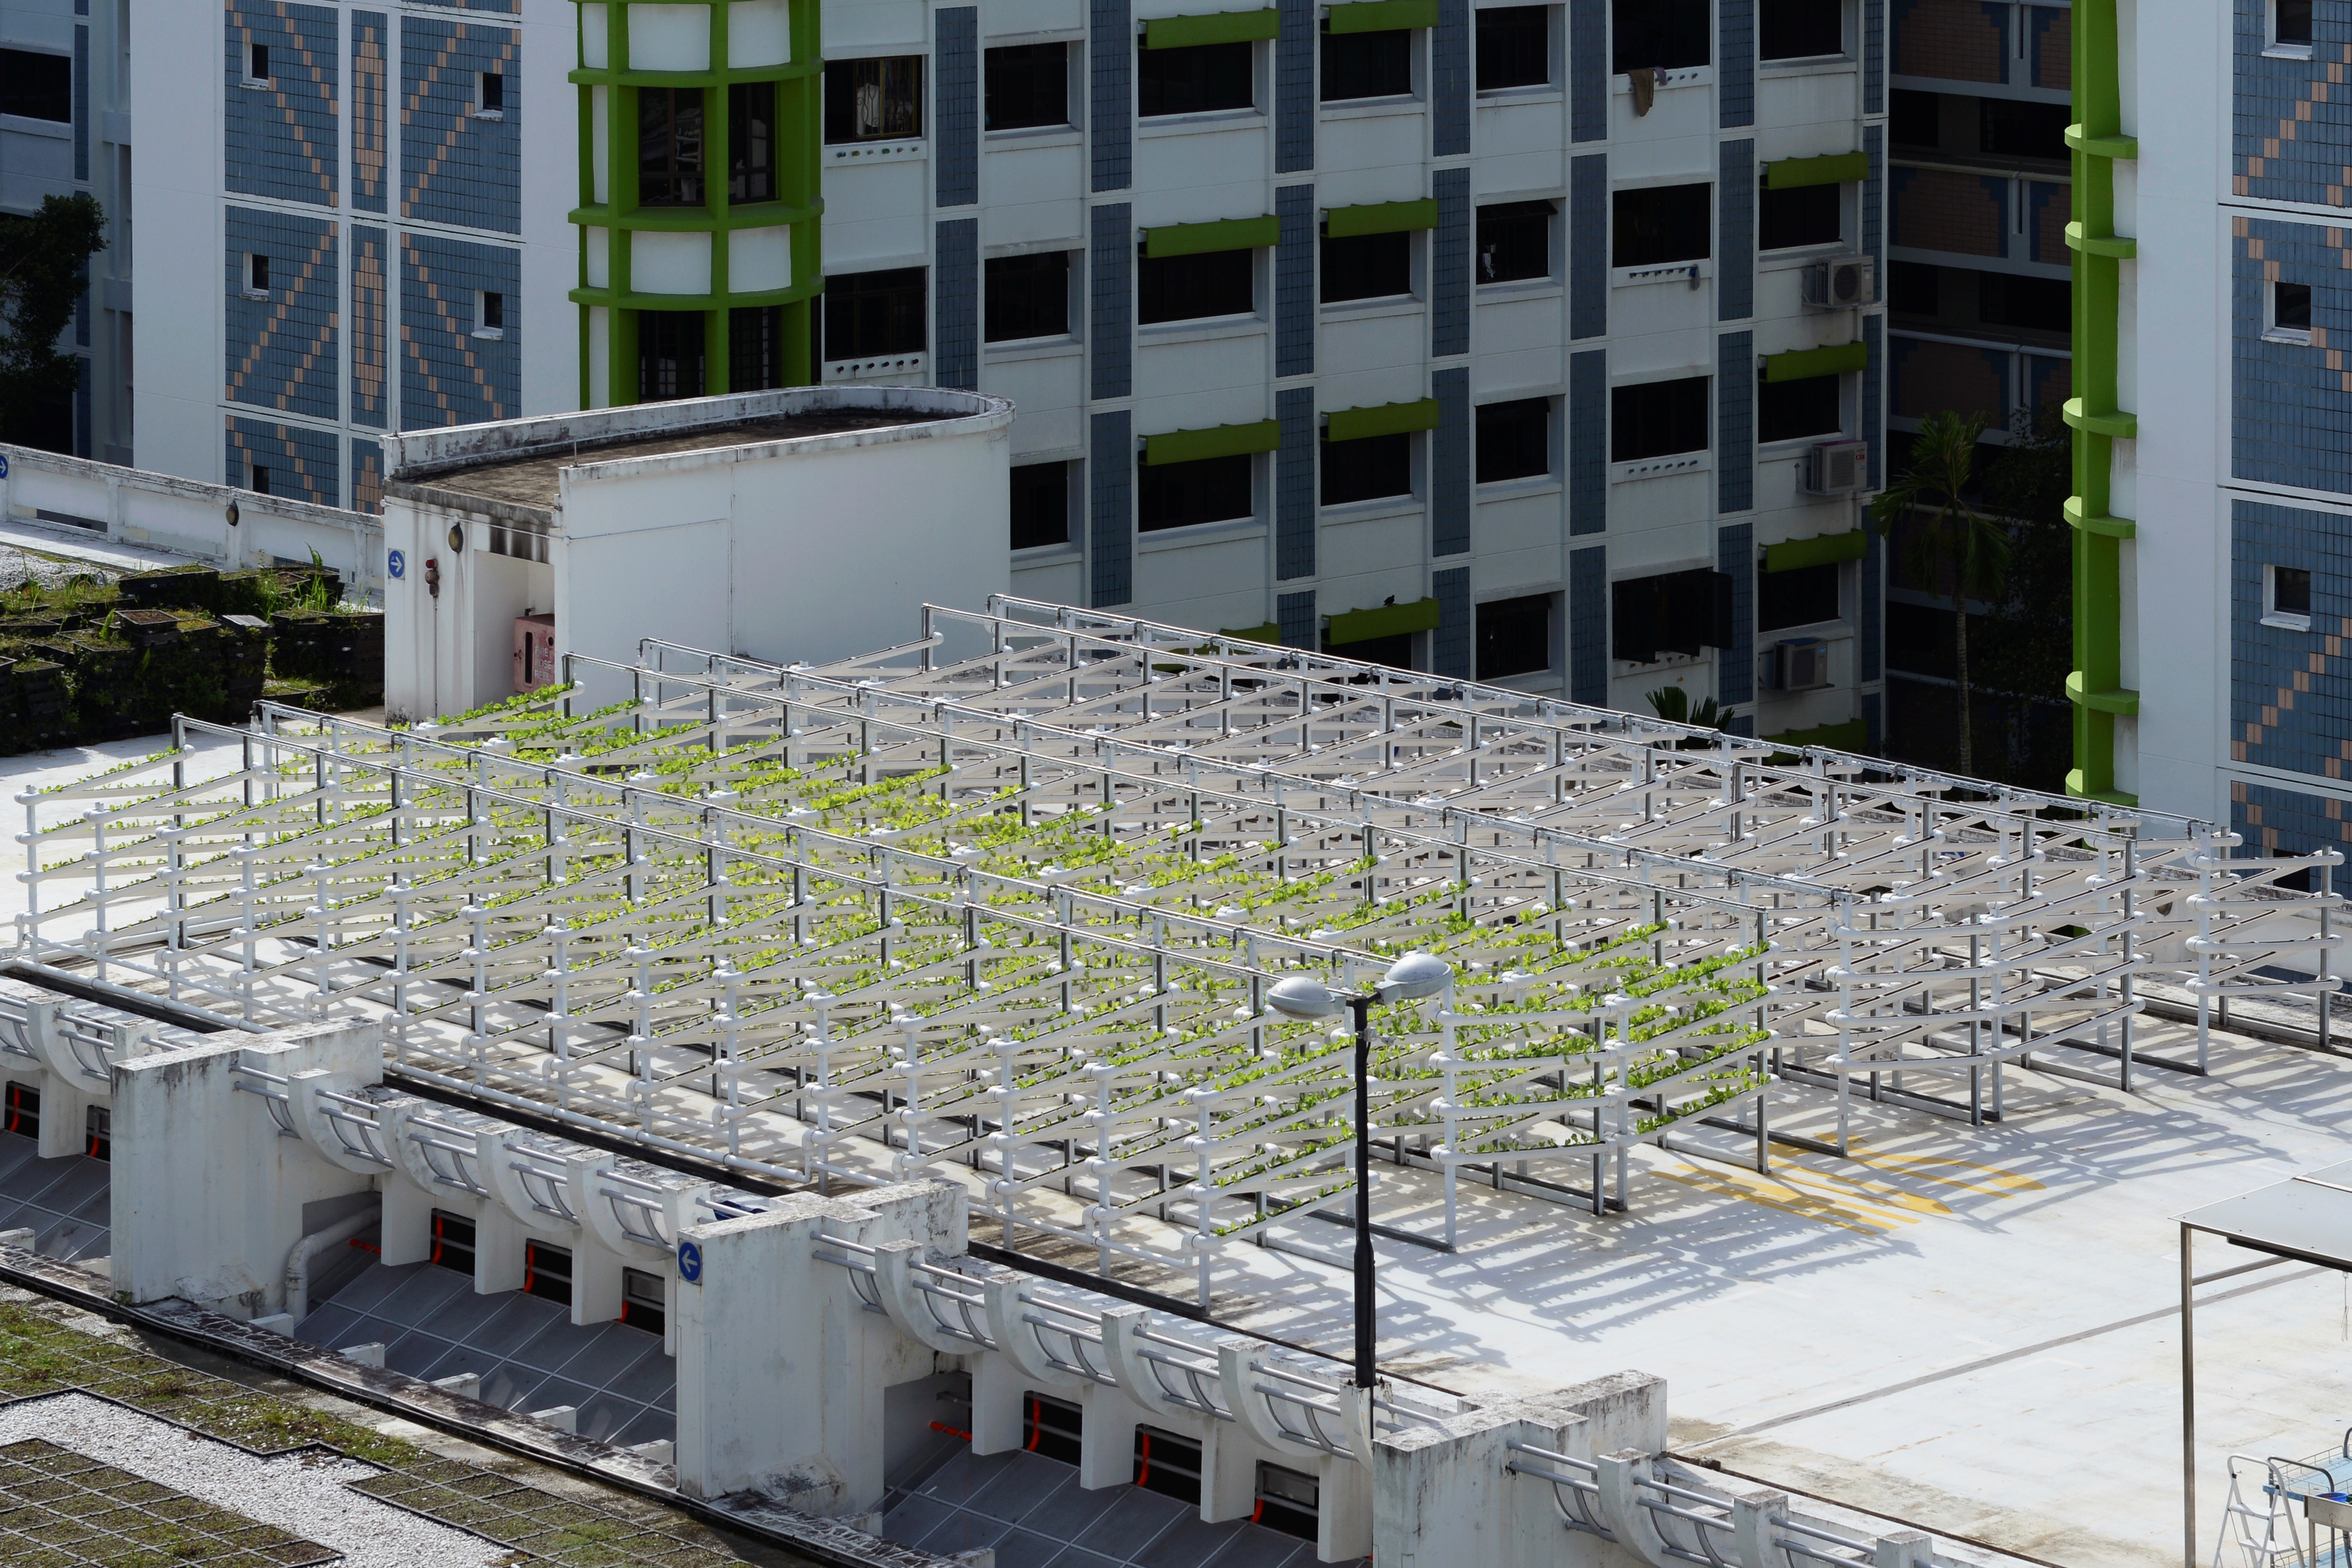 An aerial view shows Citiponics' urban farm located on the rooftop of a multi-story garage in a public housing estate in western Singapore, April 17, 2018.